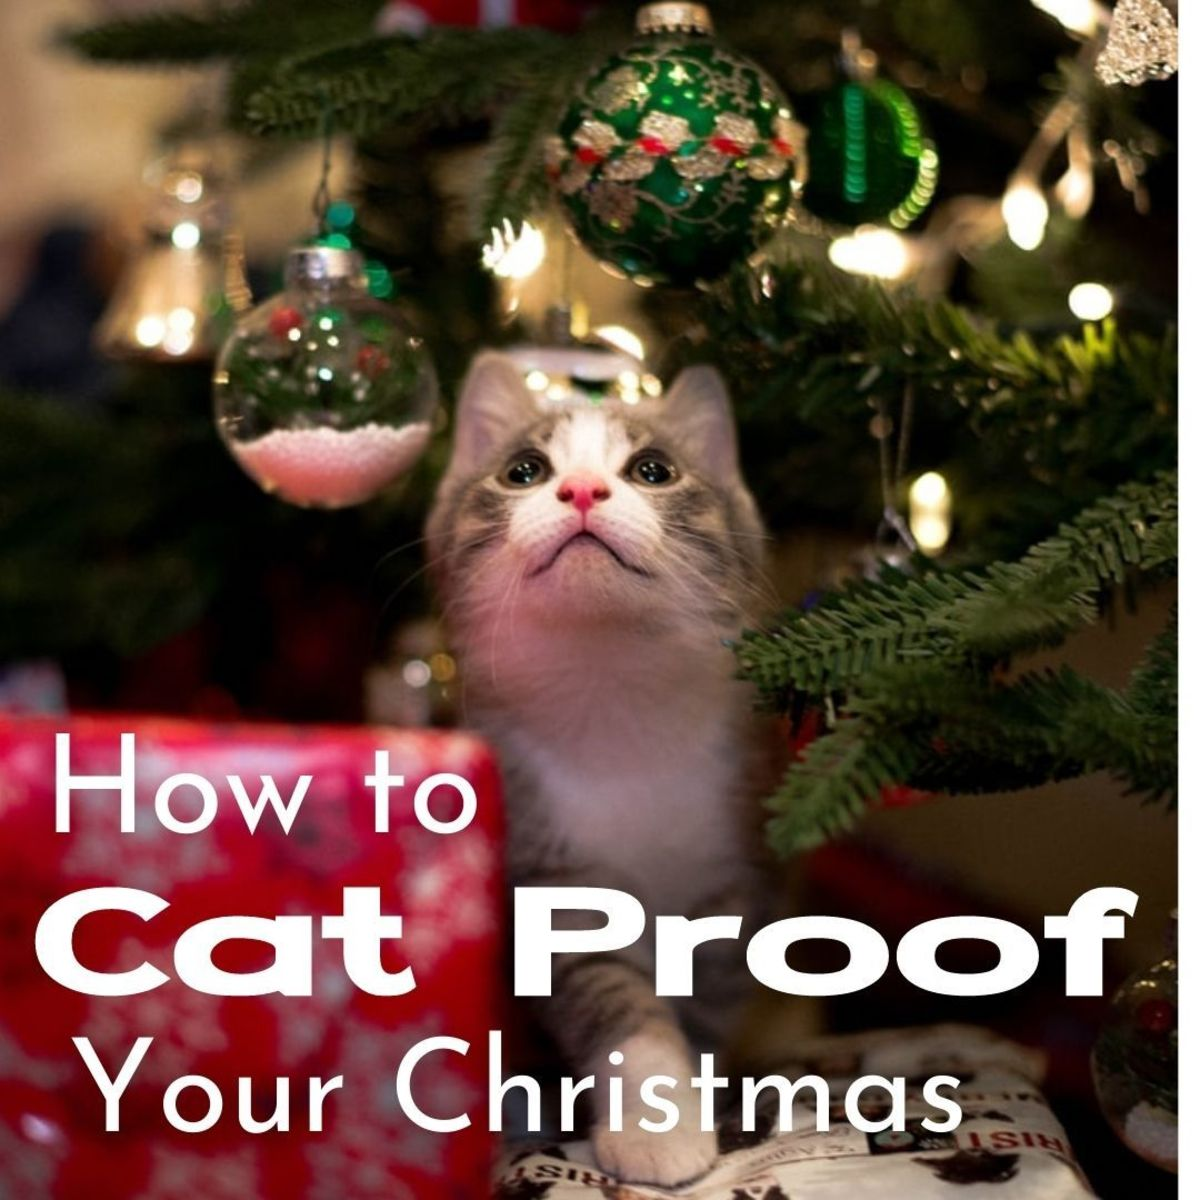 Dangling ornaments are just too tempting even for older, sedate cats. They love to bat them around. Younger cats find them irresiastible and will knock them off, chase them about, and try to look innocent when they break.